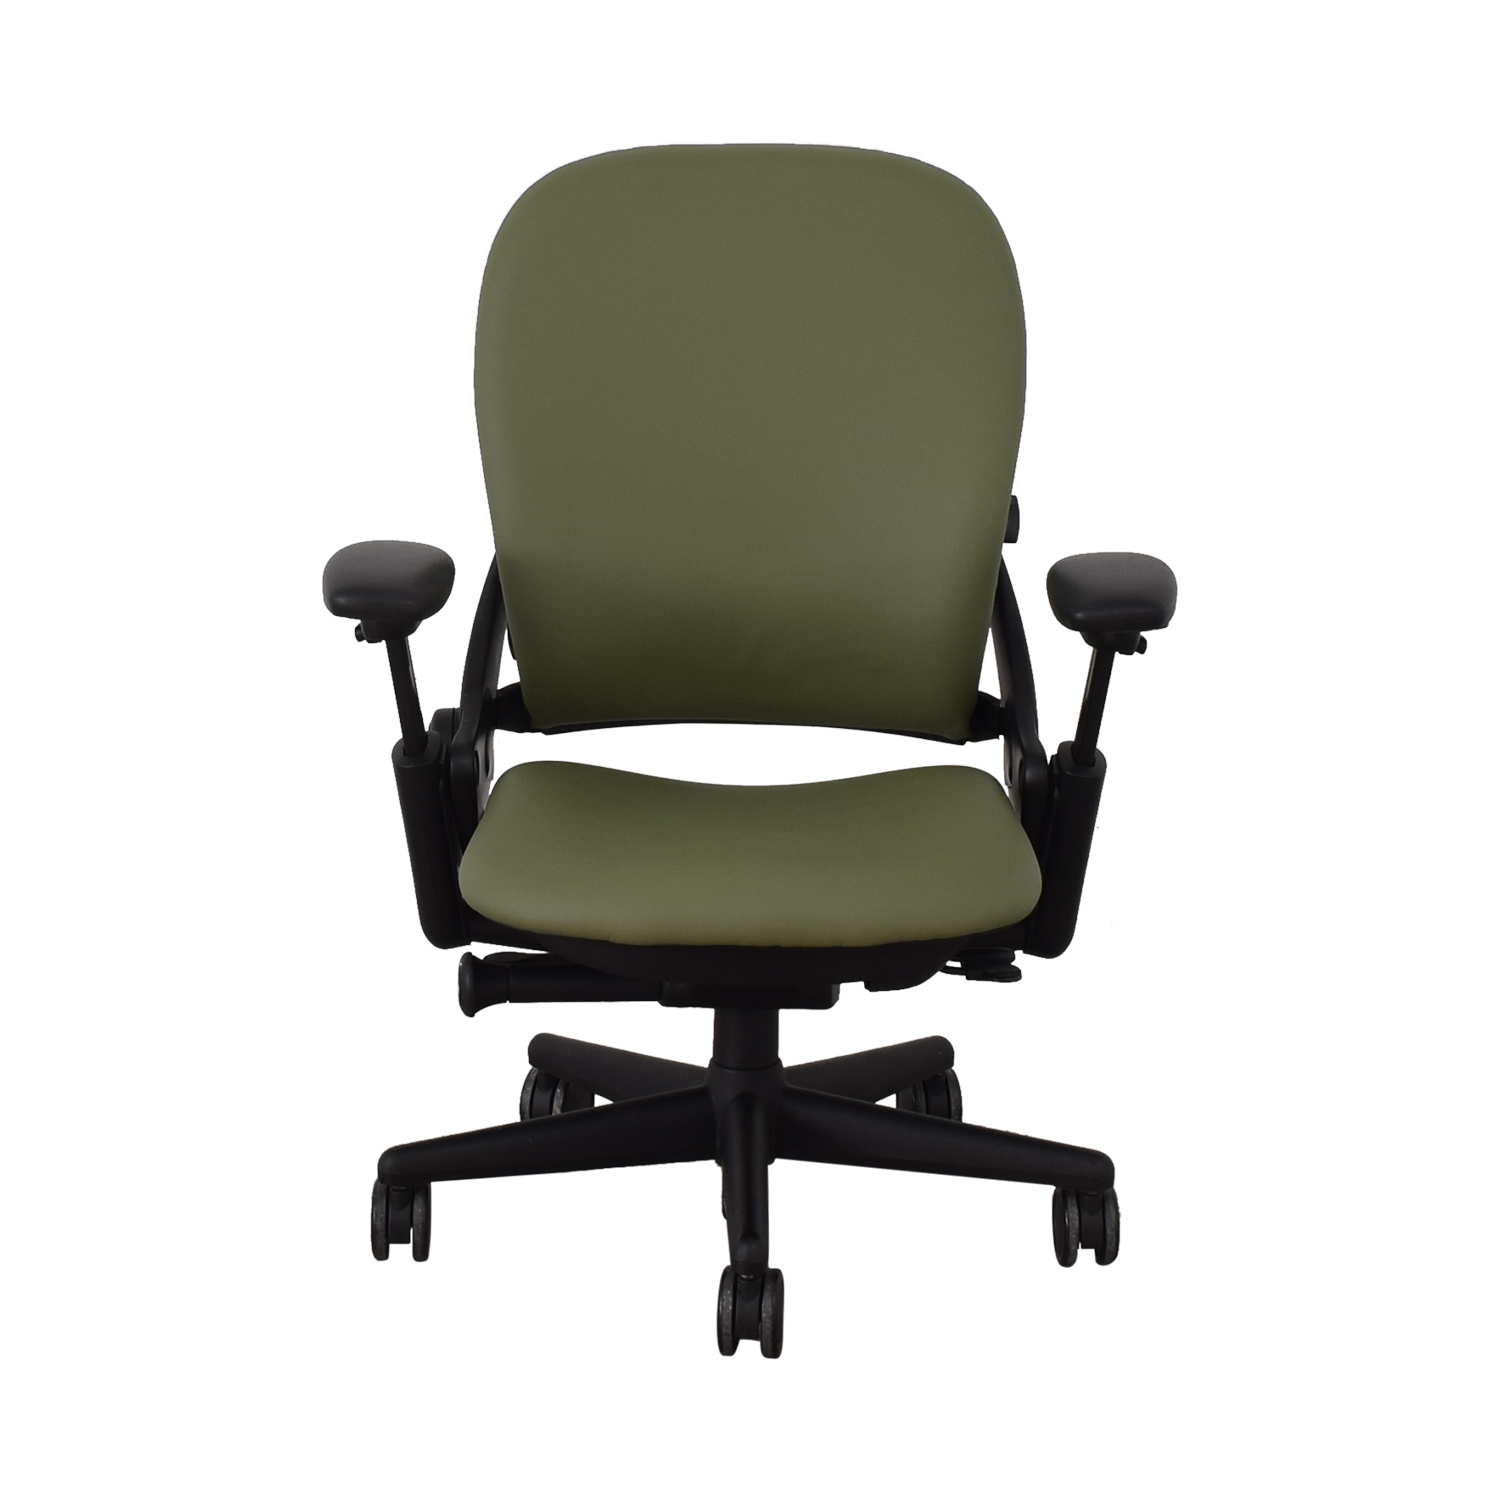 Steelcase Steelcase Adjustable Leap Chair Home Office Chairs